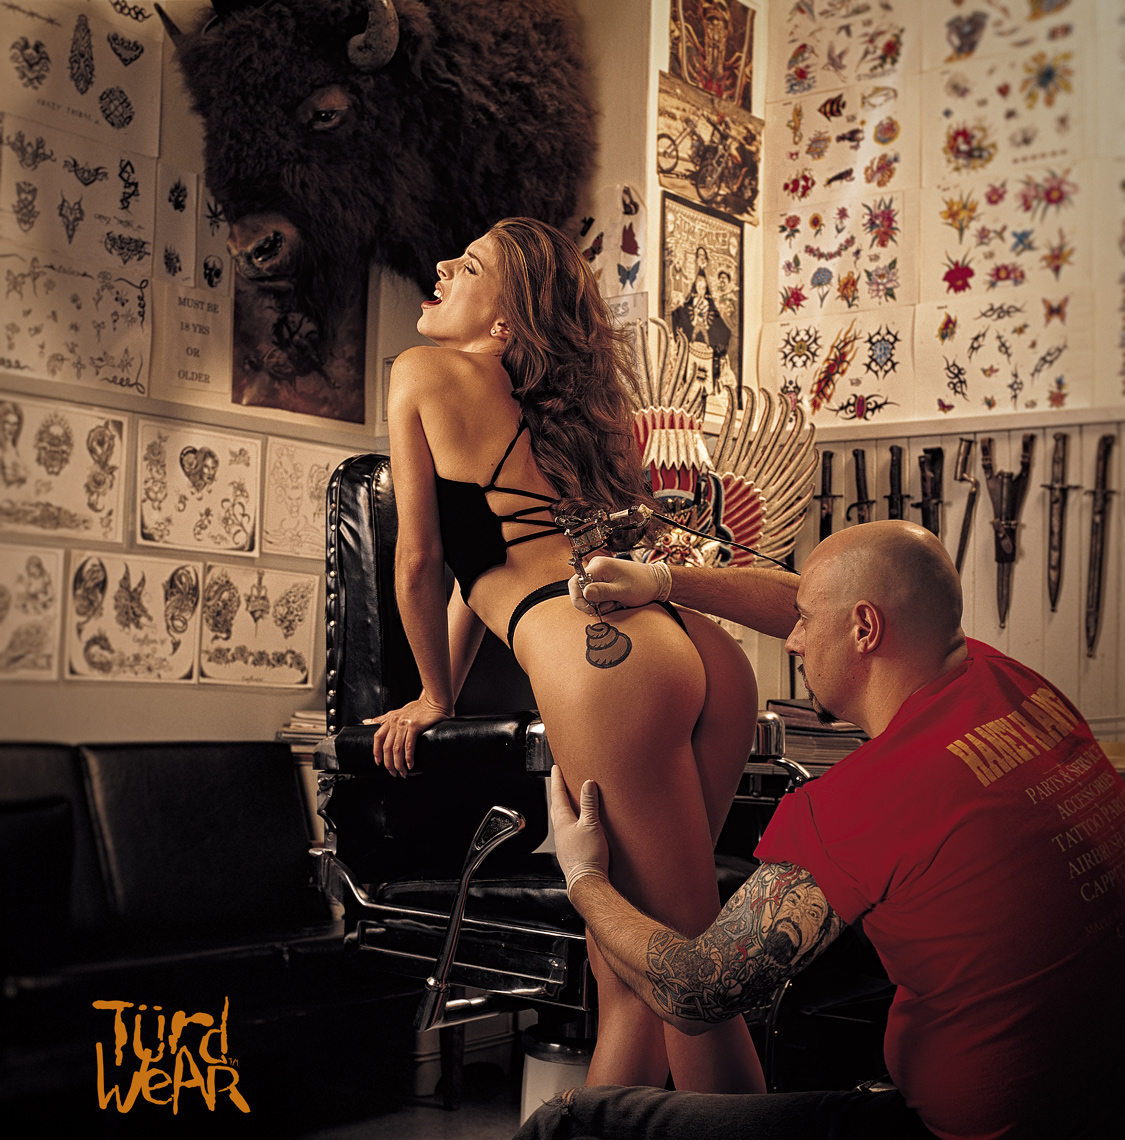 attractive girl gets a tattoo on her bum in a tattoo shop